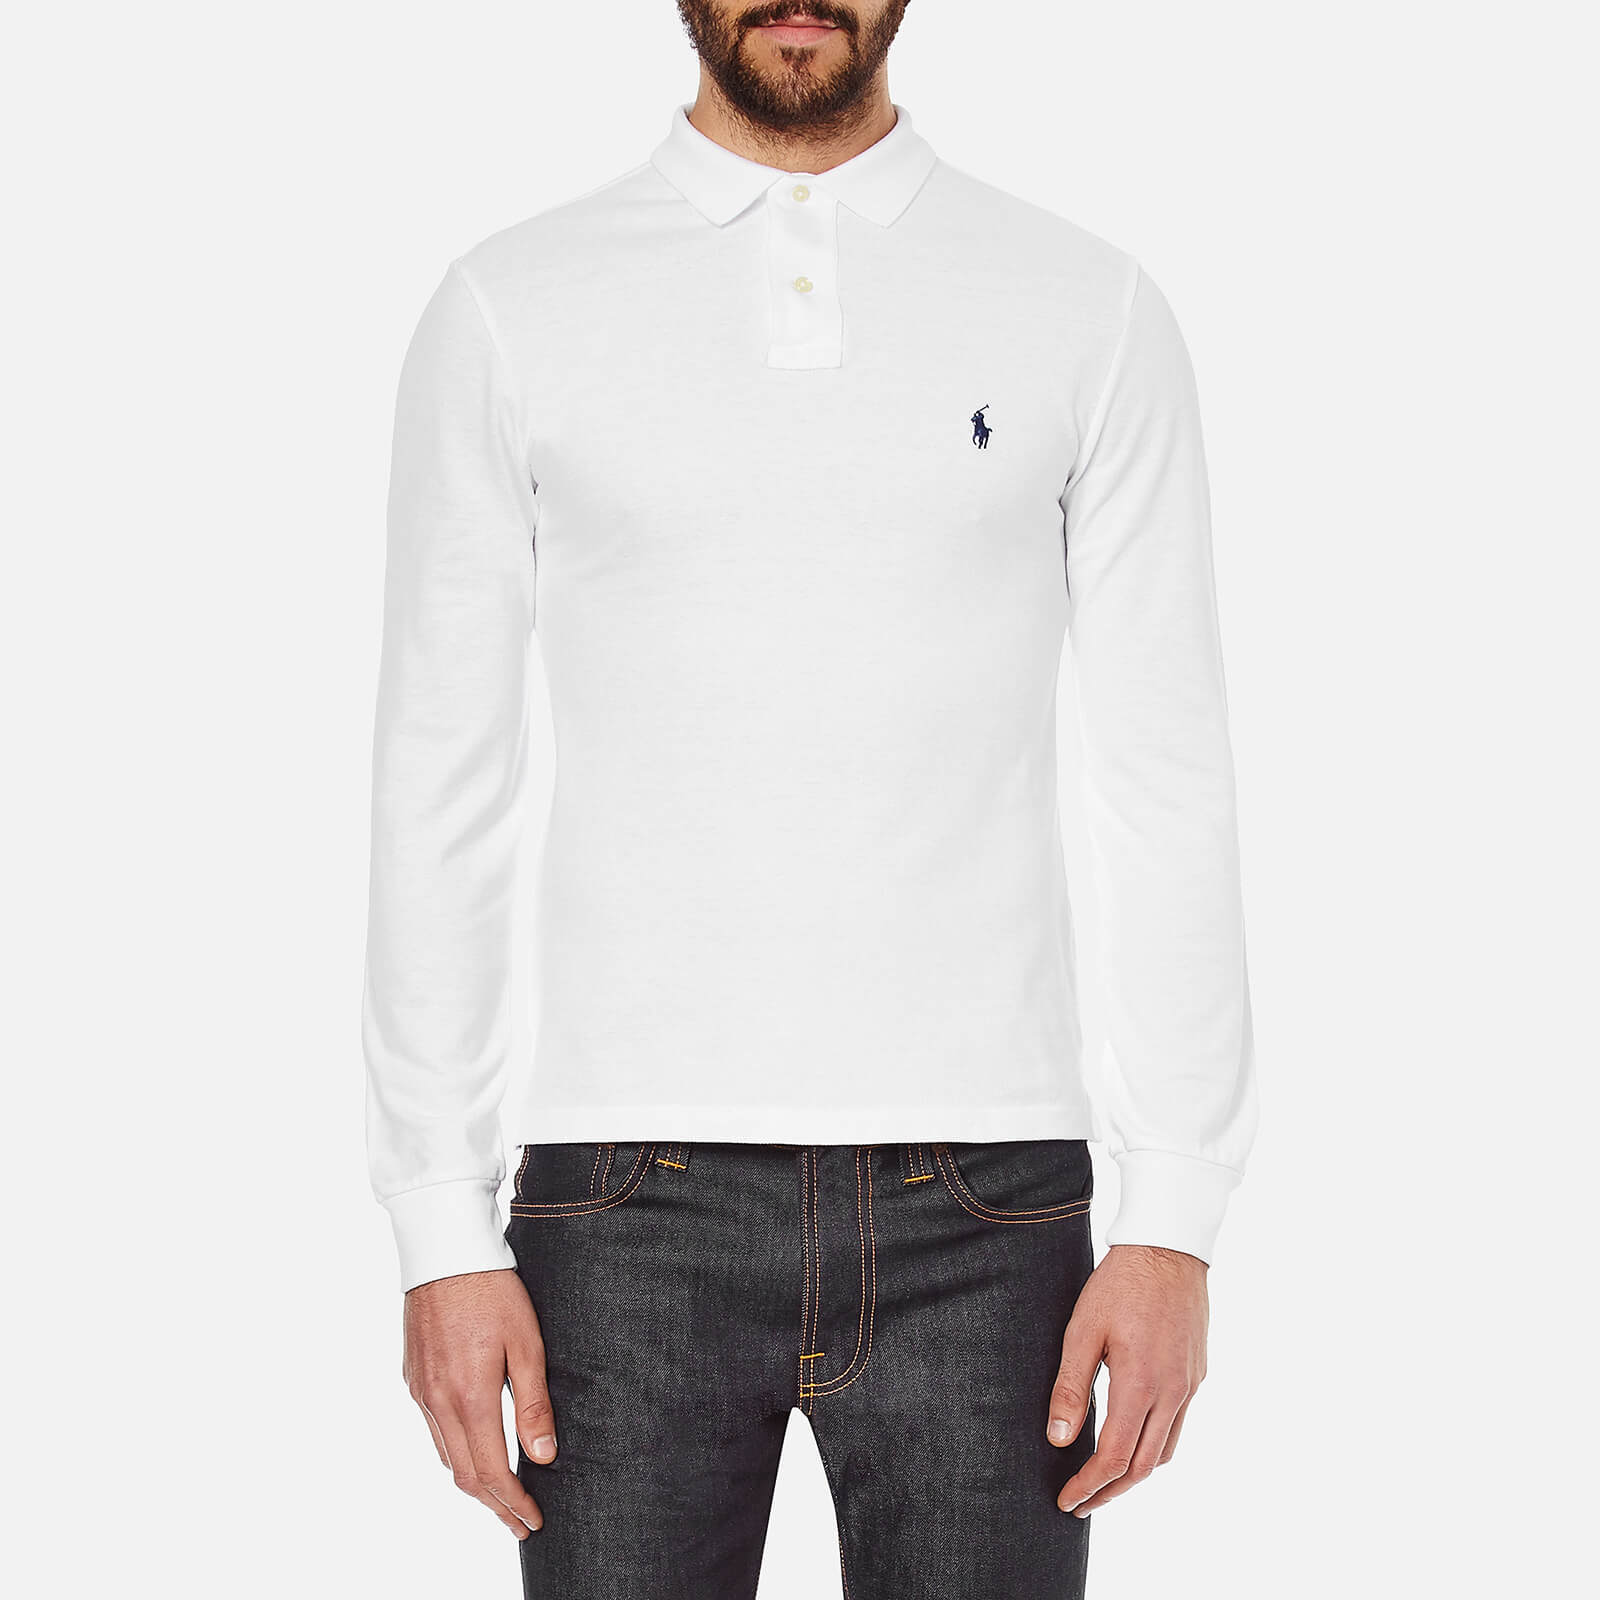 5f91d8fa4428 Polo Ralph Lauren Men s Slim Fit Long Sleeved Polo Shirt - White - Free UK  Delivery over £50